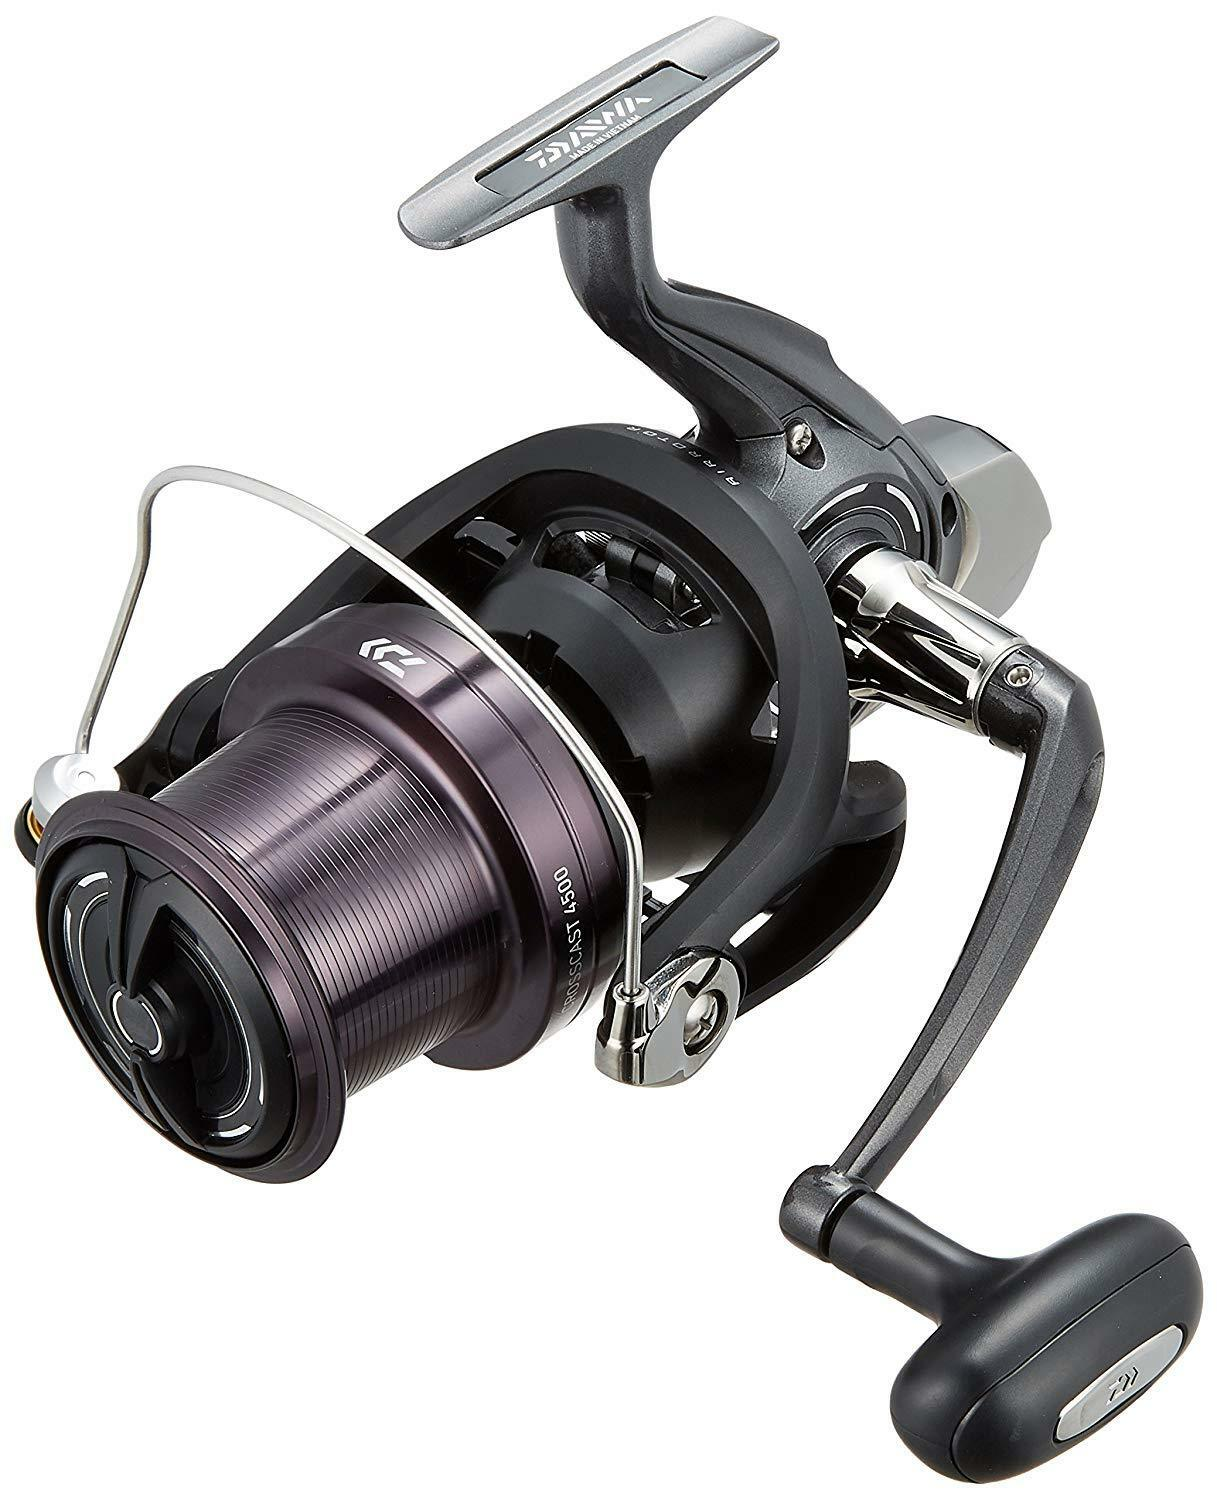 Daiwa 17 CROSSCAST 4500 Spininng Reel SURF CASTING from Japan